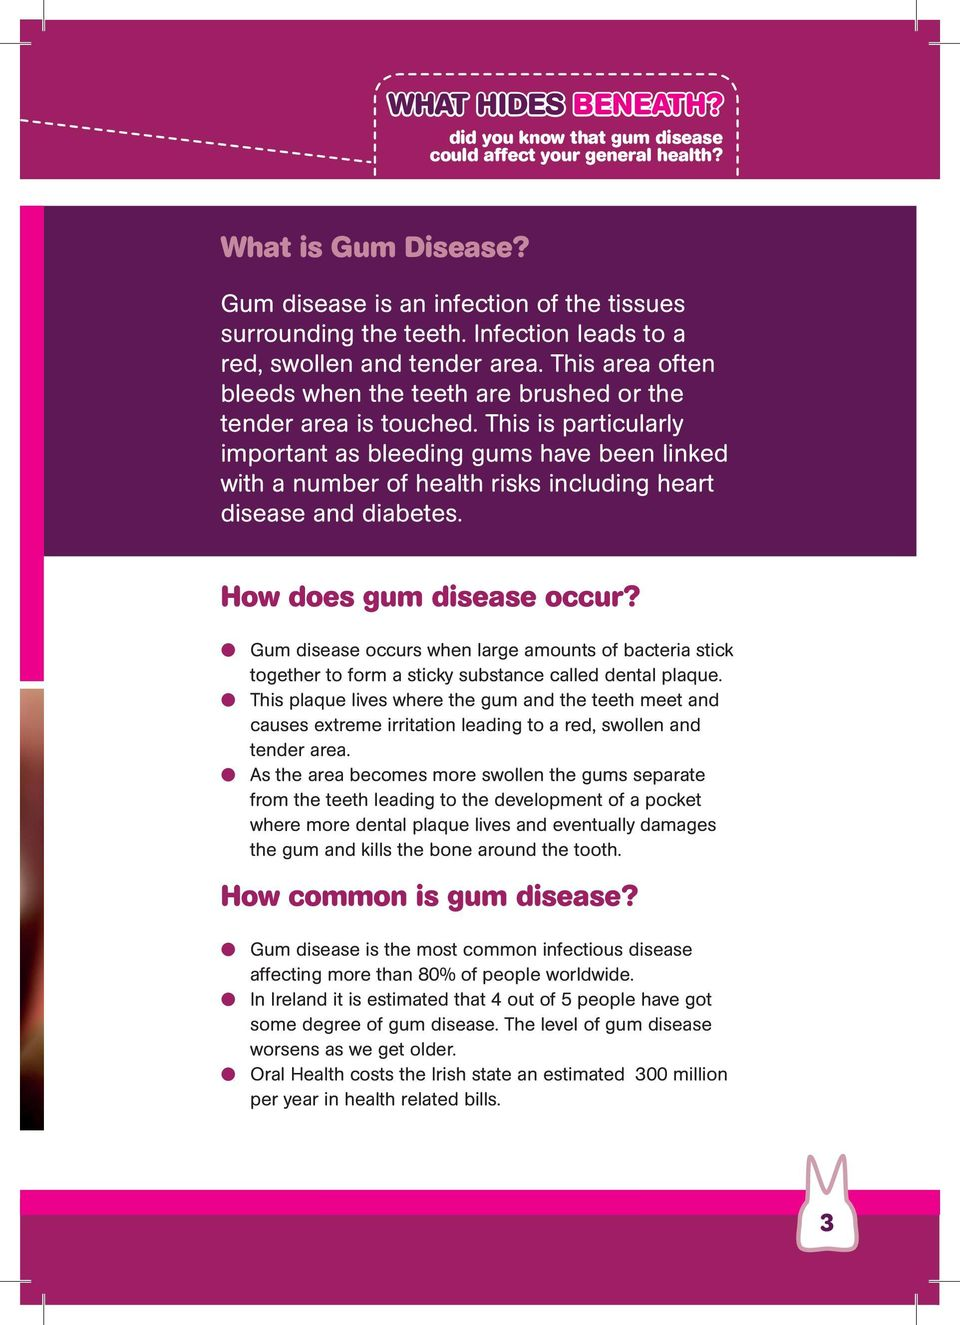 This is particularly important as bleeding gums have been linked with a number of health risks including heart disease and diabetes. How does gum disease occur?